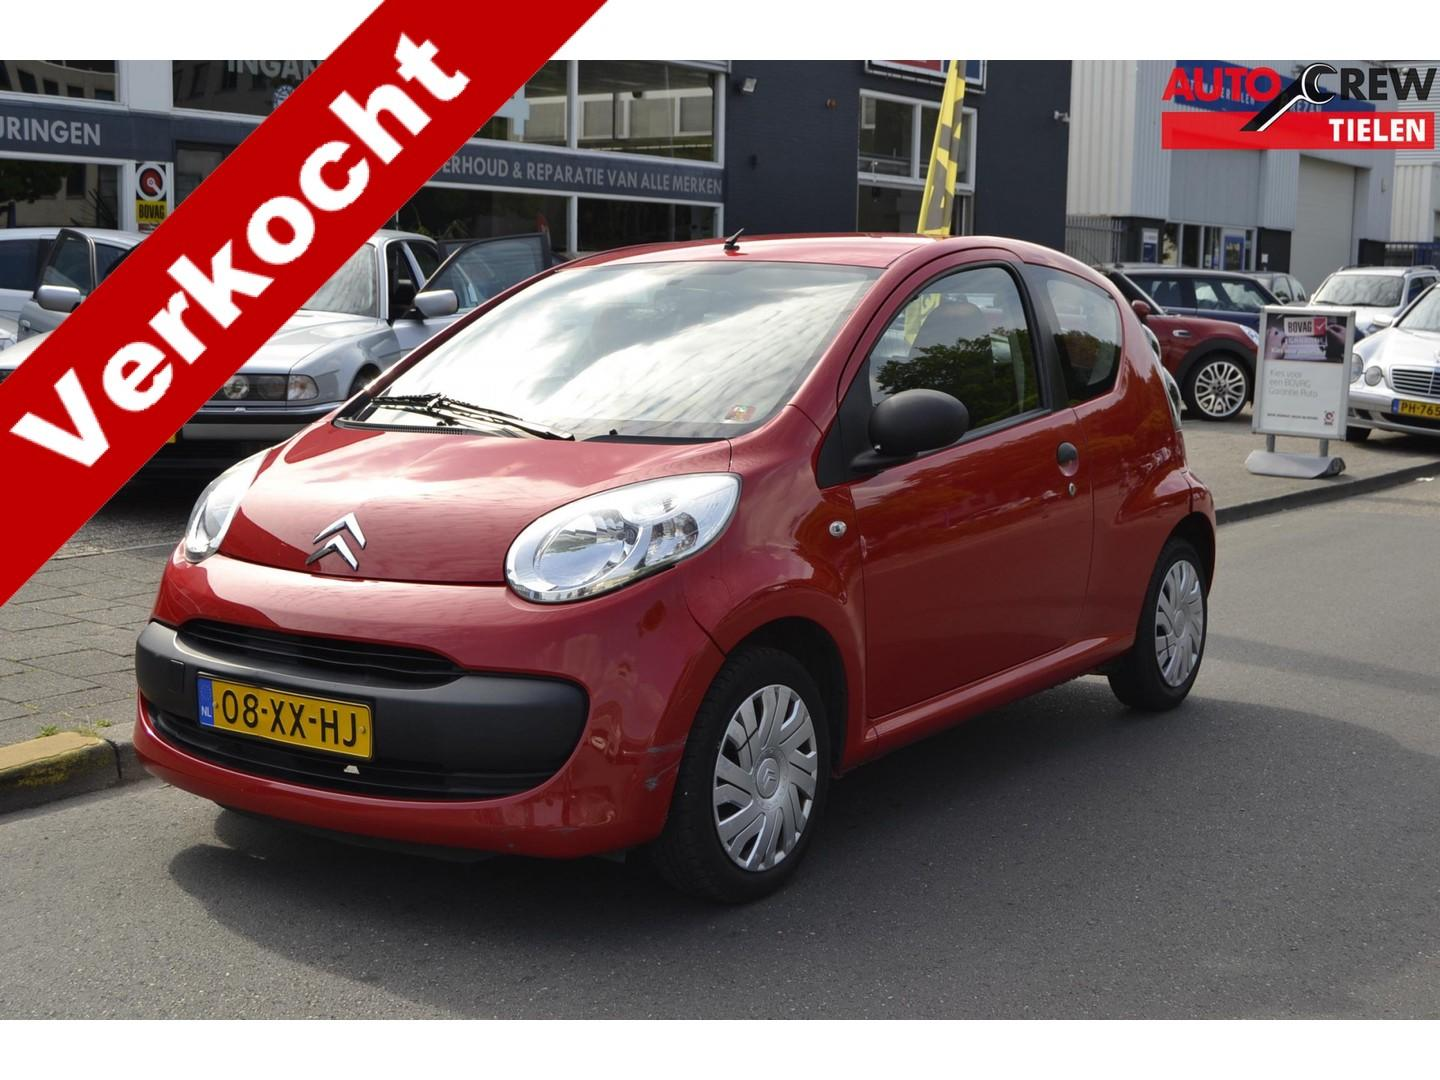 Citroën C1 1.0-12v séduction 3 drs, leuke auto!